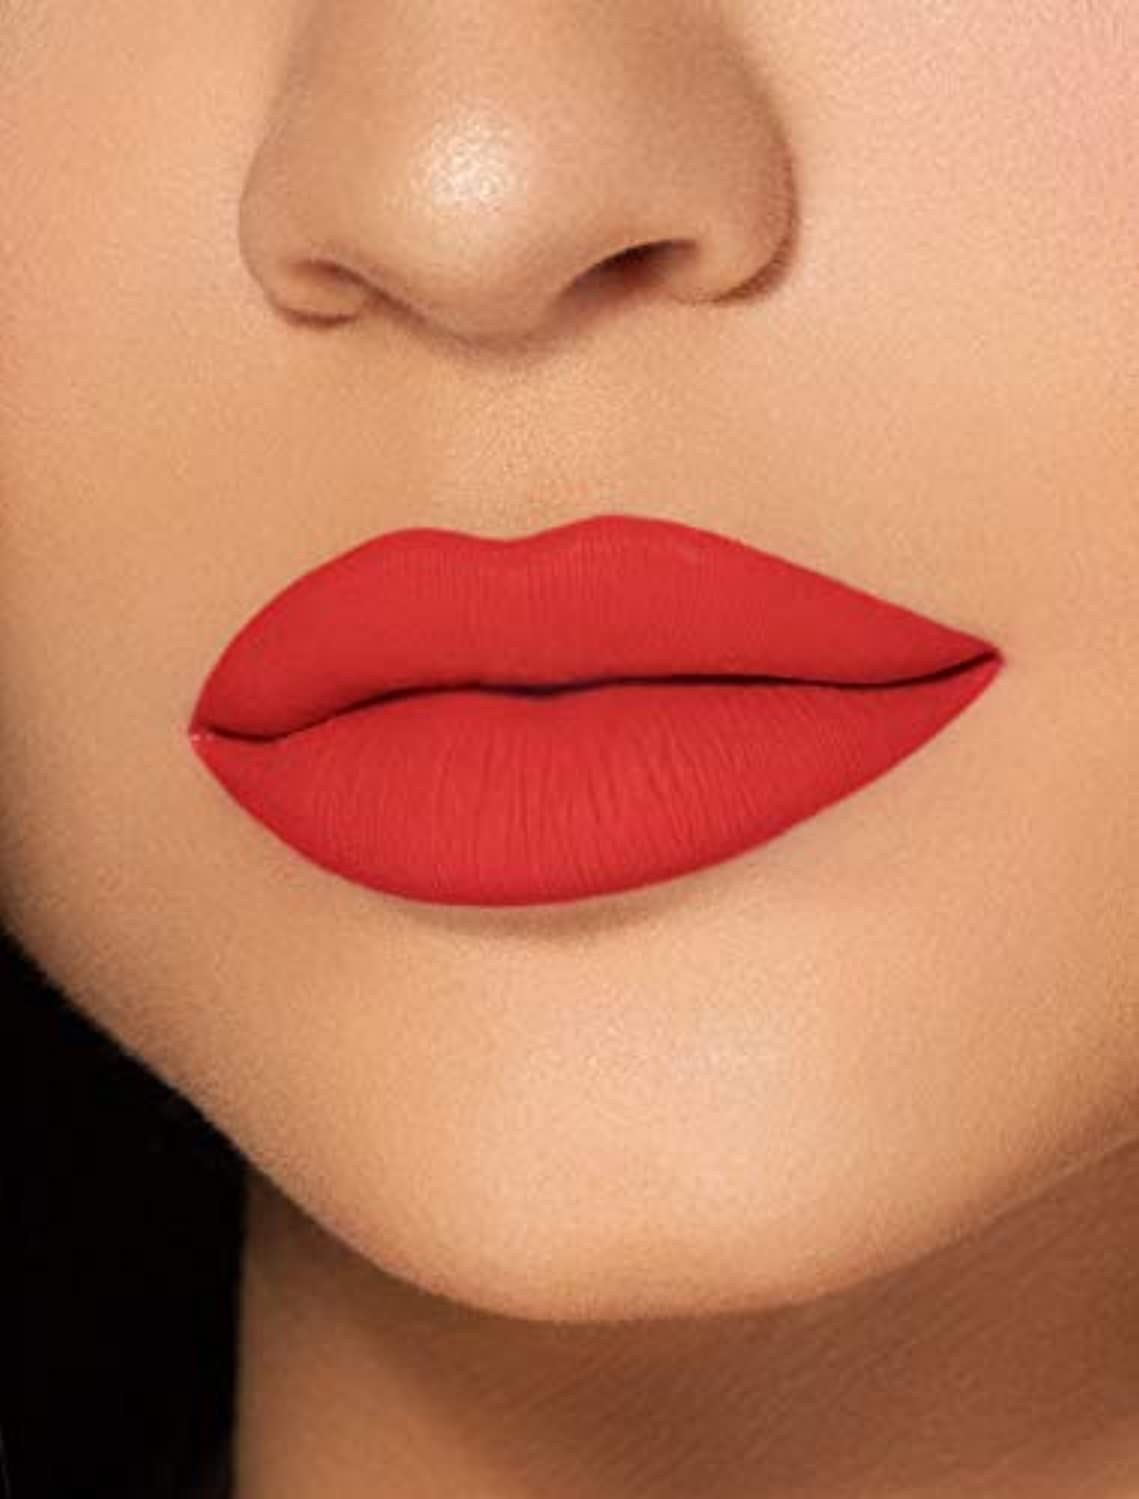 論理的処方する論争的KYLIE COSMETICS Matte Lip Kit (Boss)